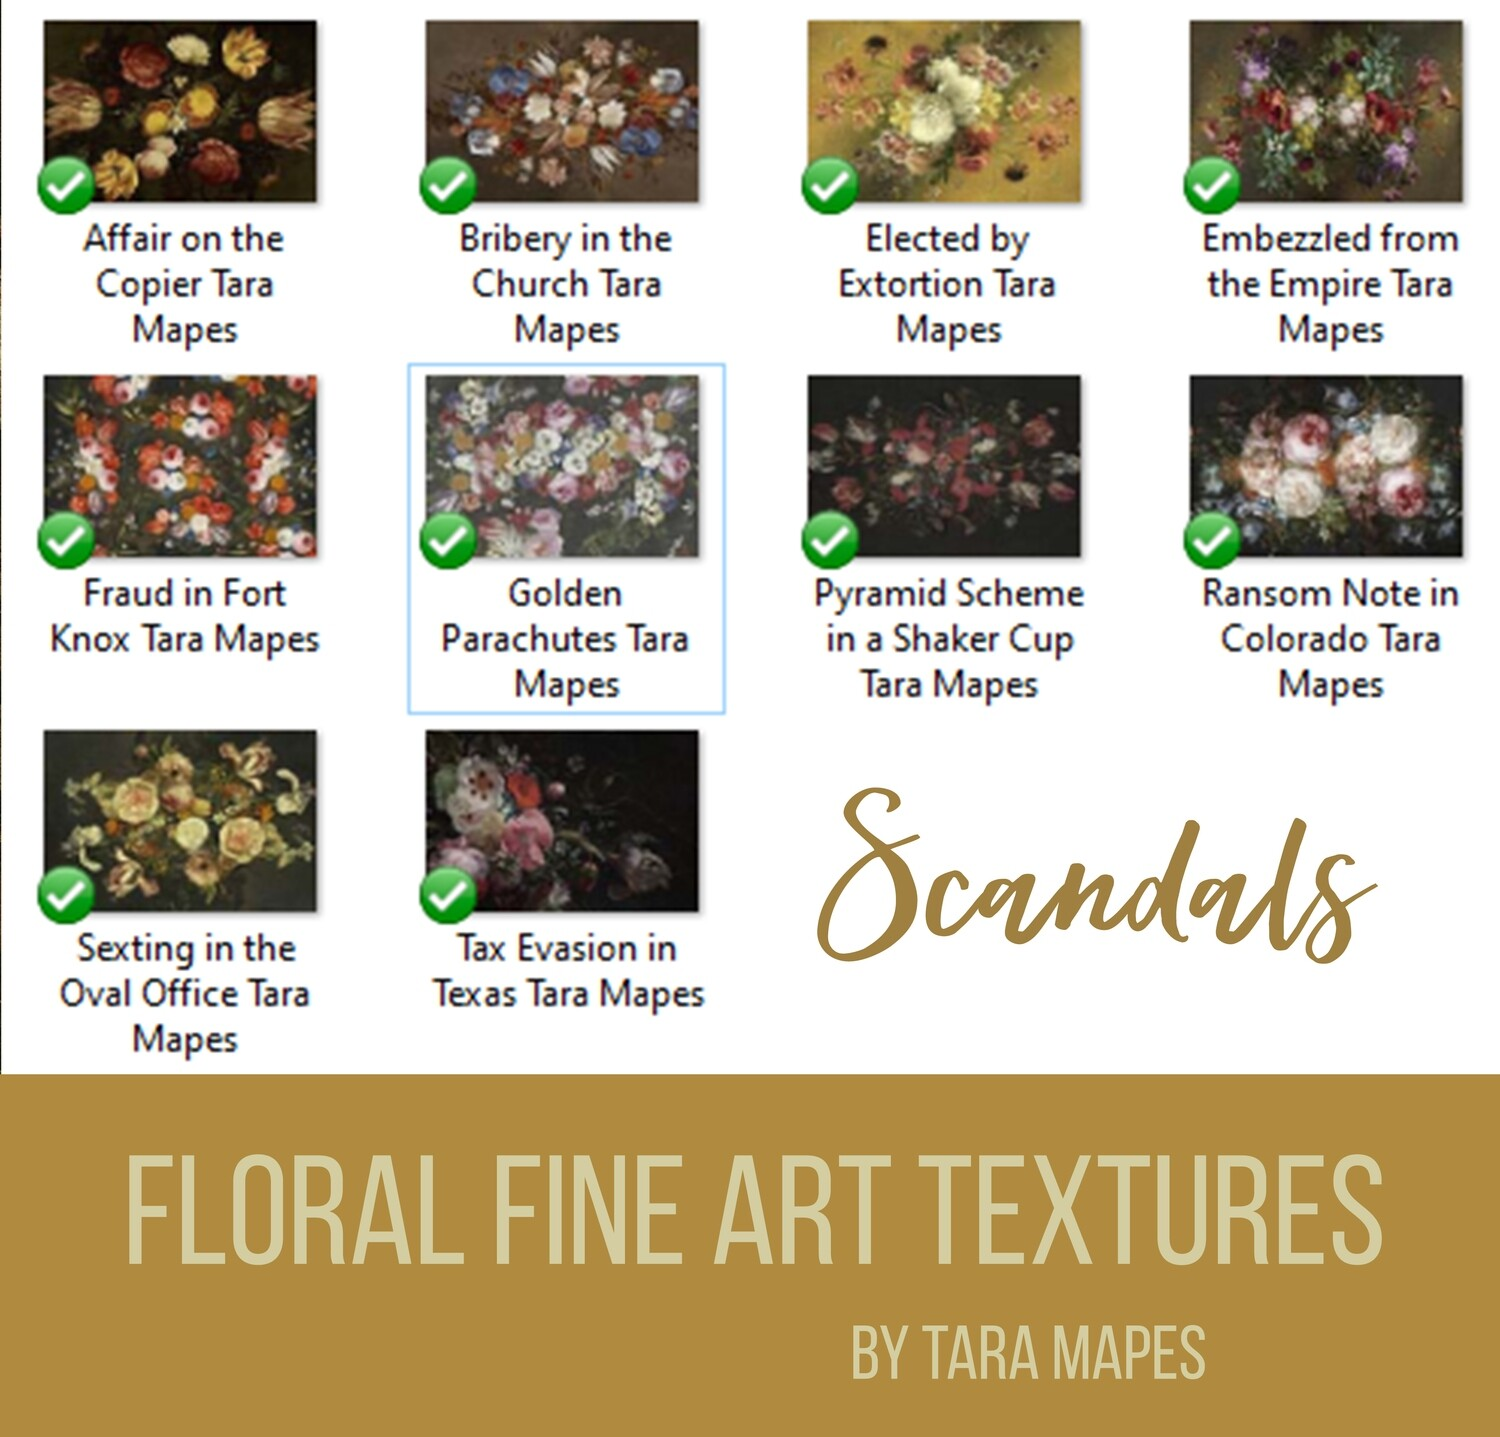 10 Old Masters Floral Textures -Floral Backdrops - Digital Backgrounds - SCANDALS Photoshop Overlays by Tara Mapes